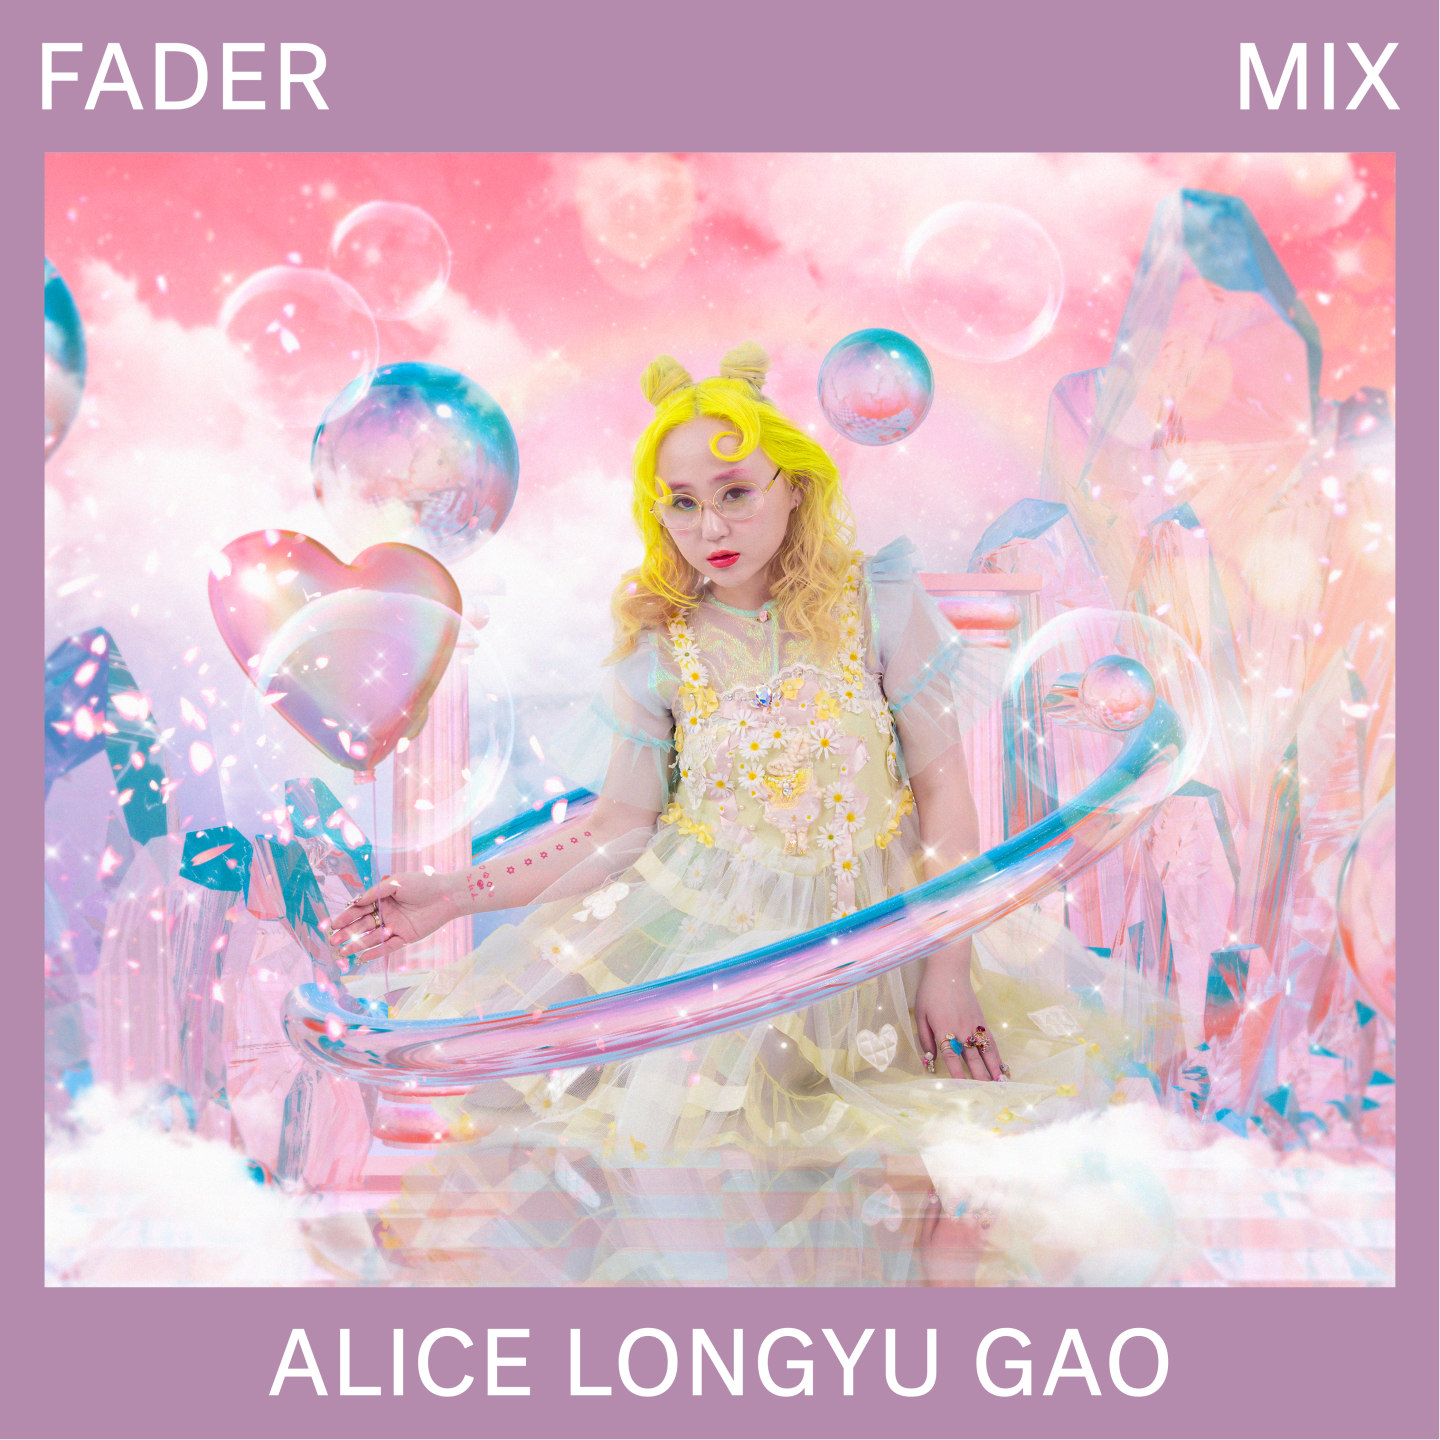 Listen to a new FADER Mix by Alice Longyu Gao